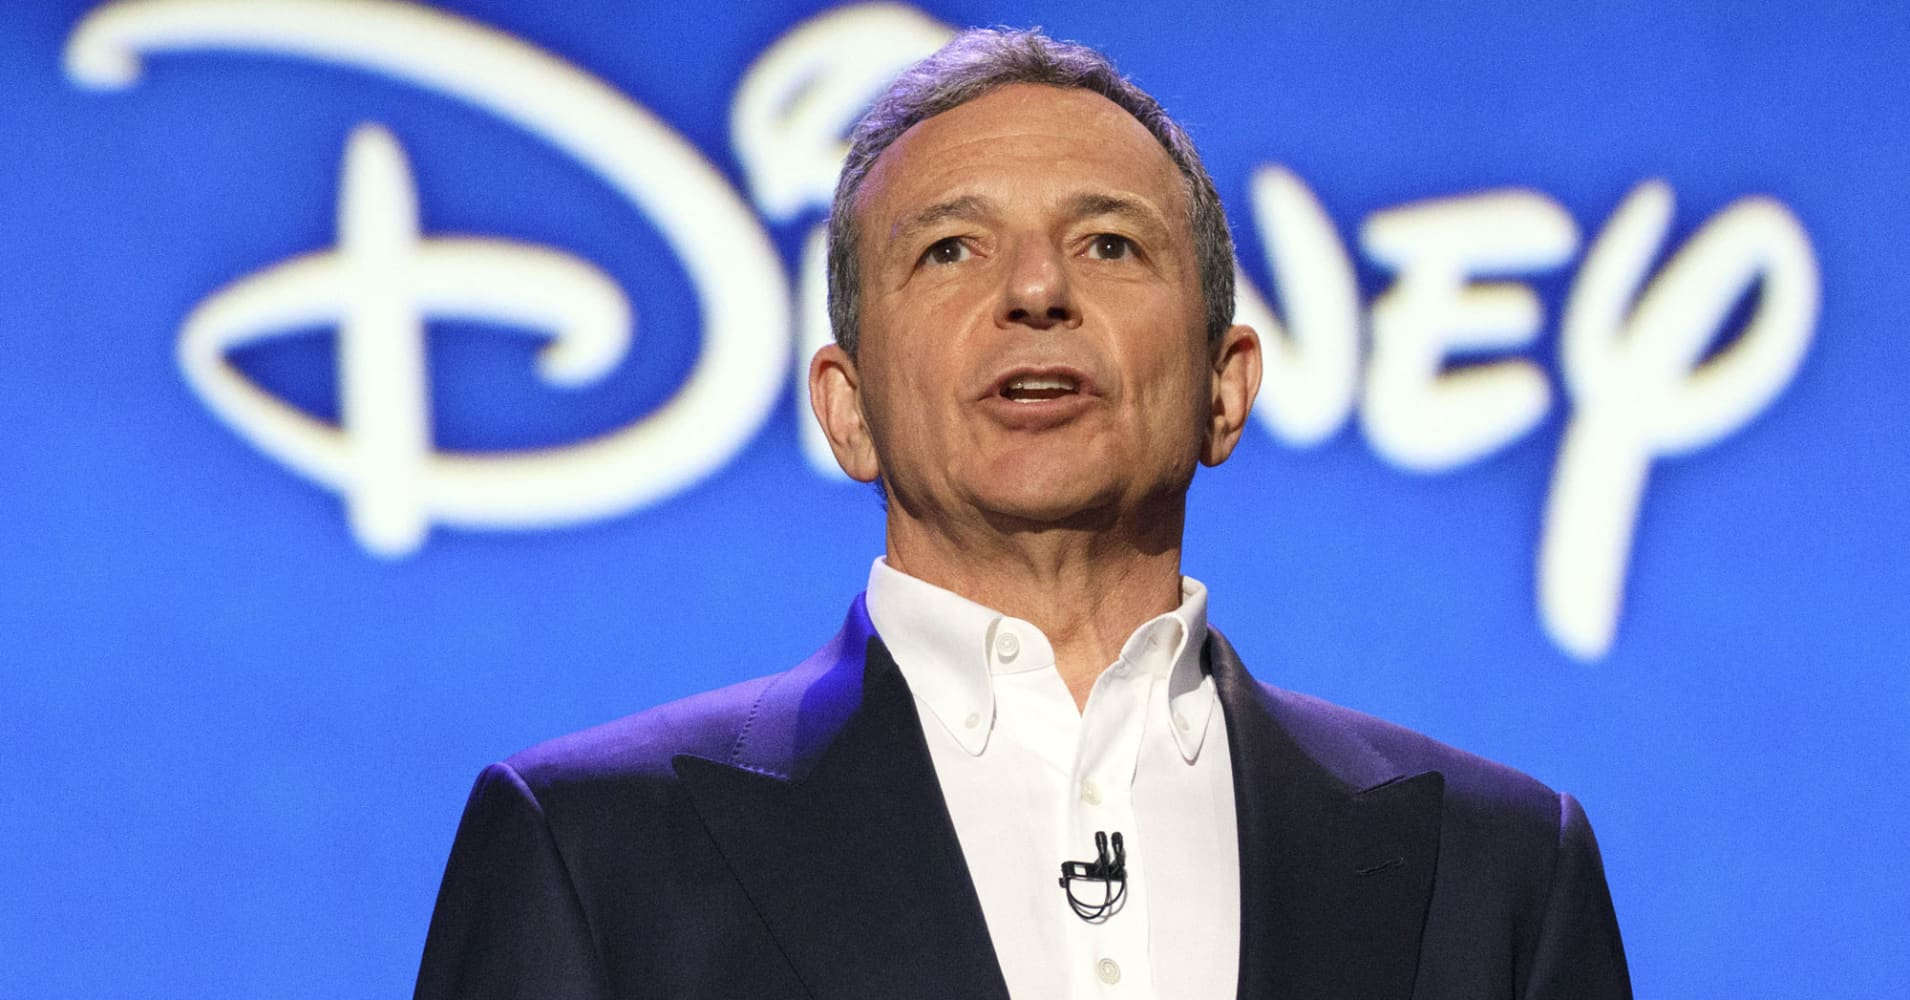 Disney's new Netflix rival will be called Disney Plus and launch late 2019